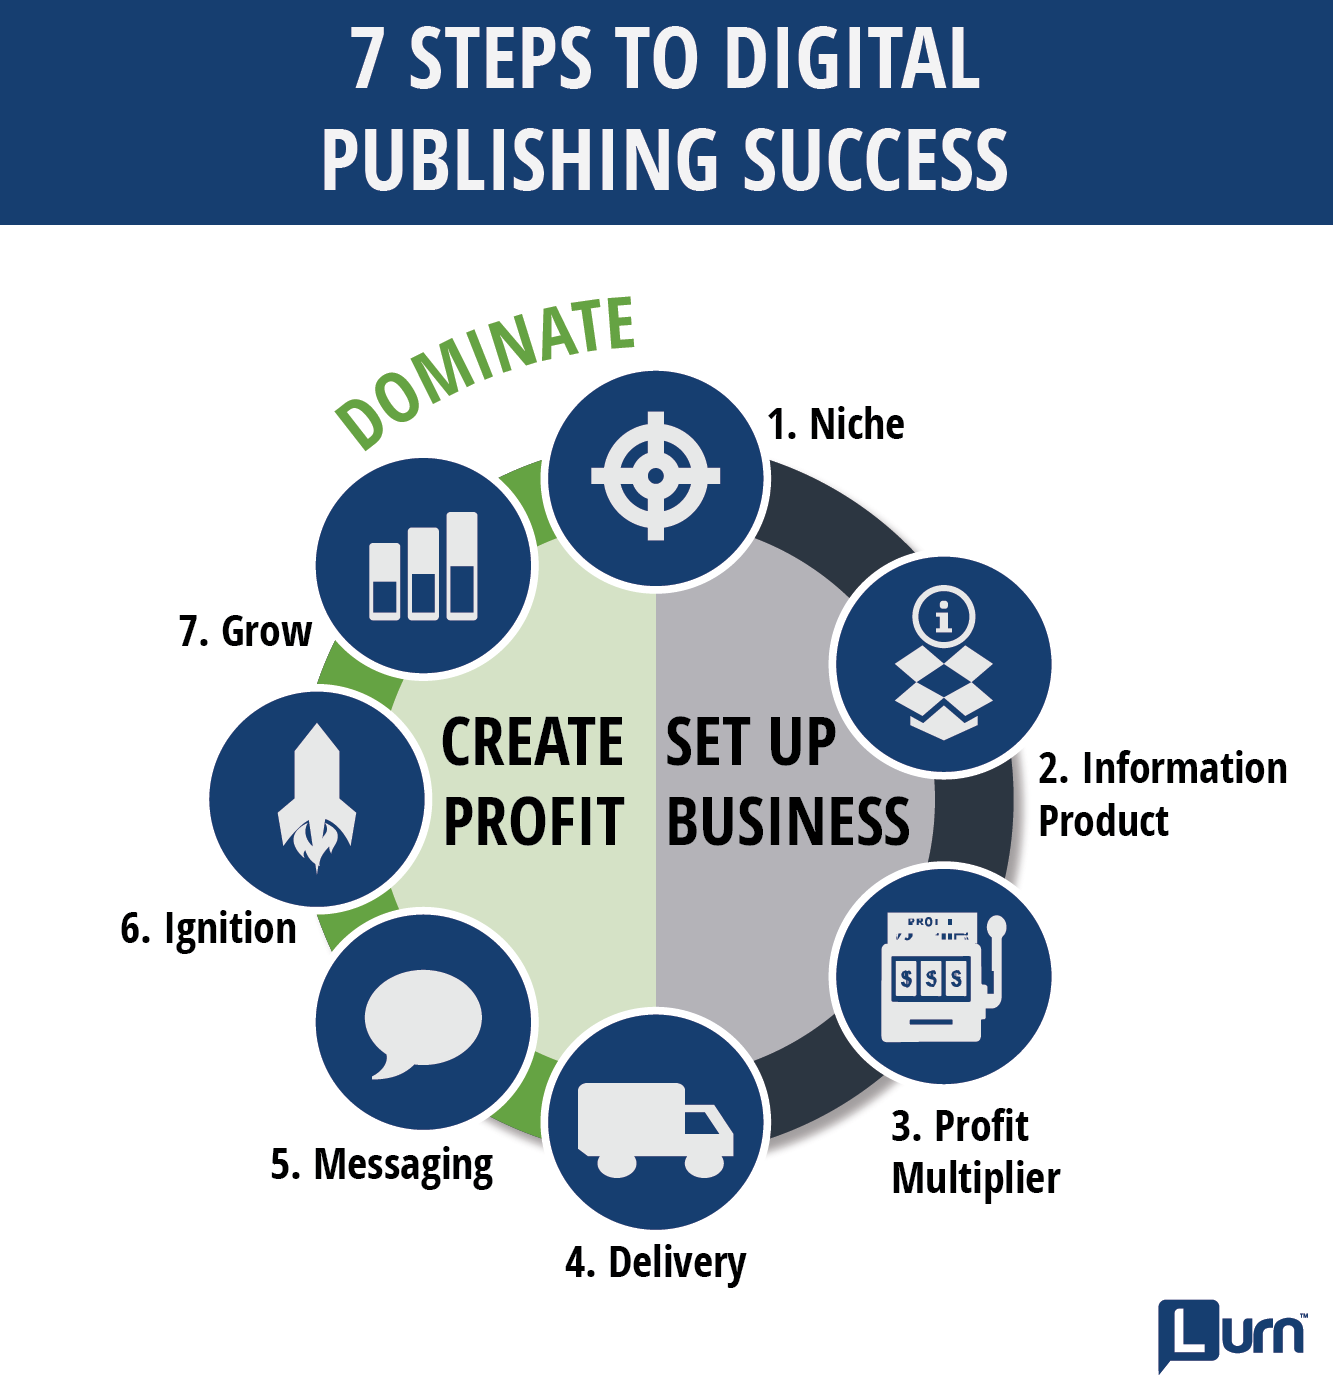 7 Steps To Digital Publishing Success